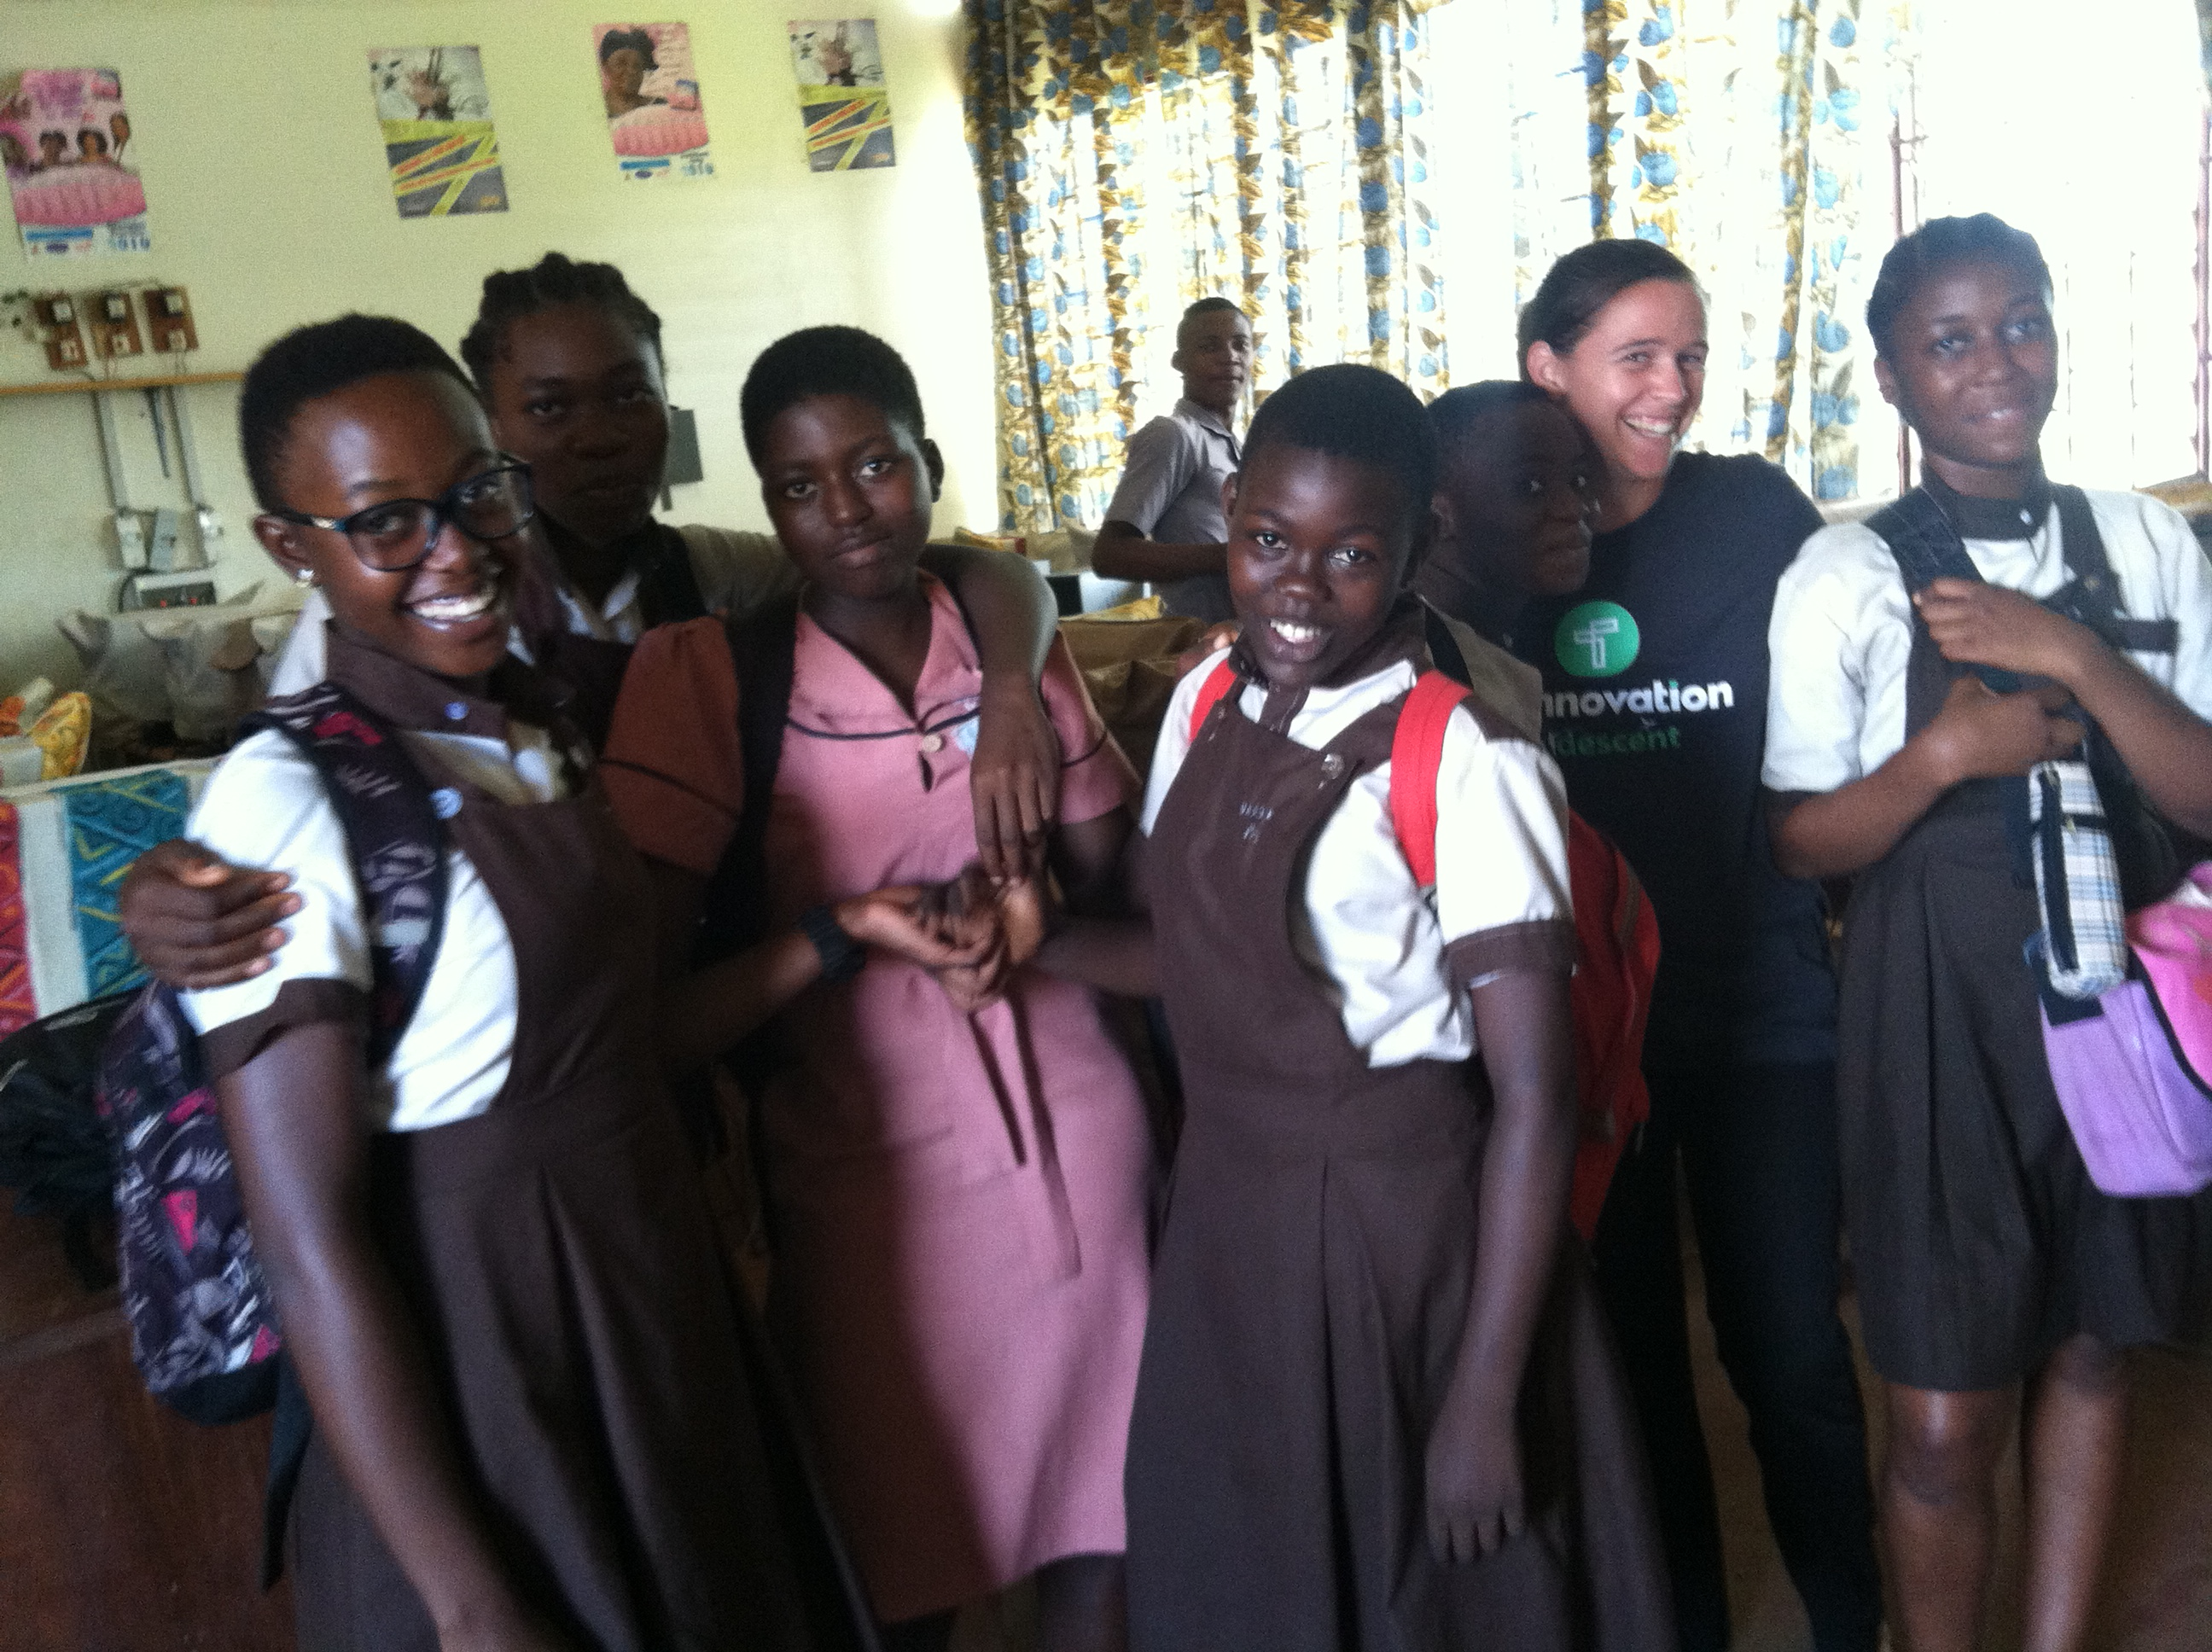 These girls believe in school, technology, and making their community better.